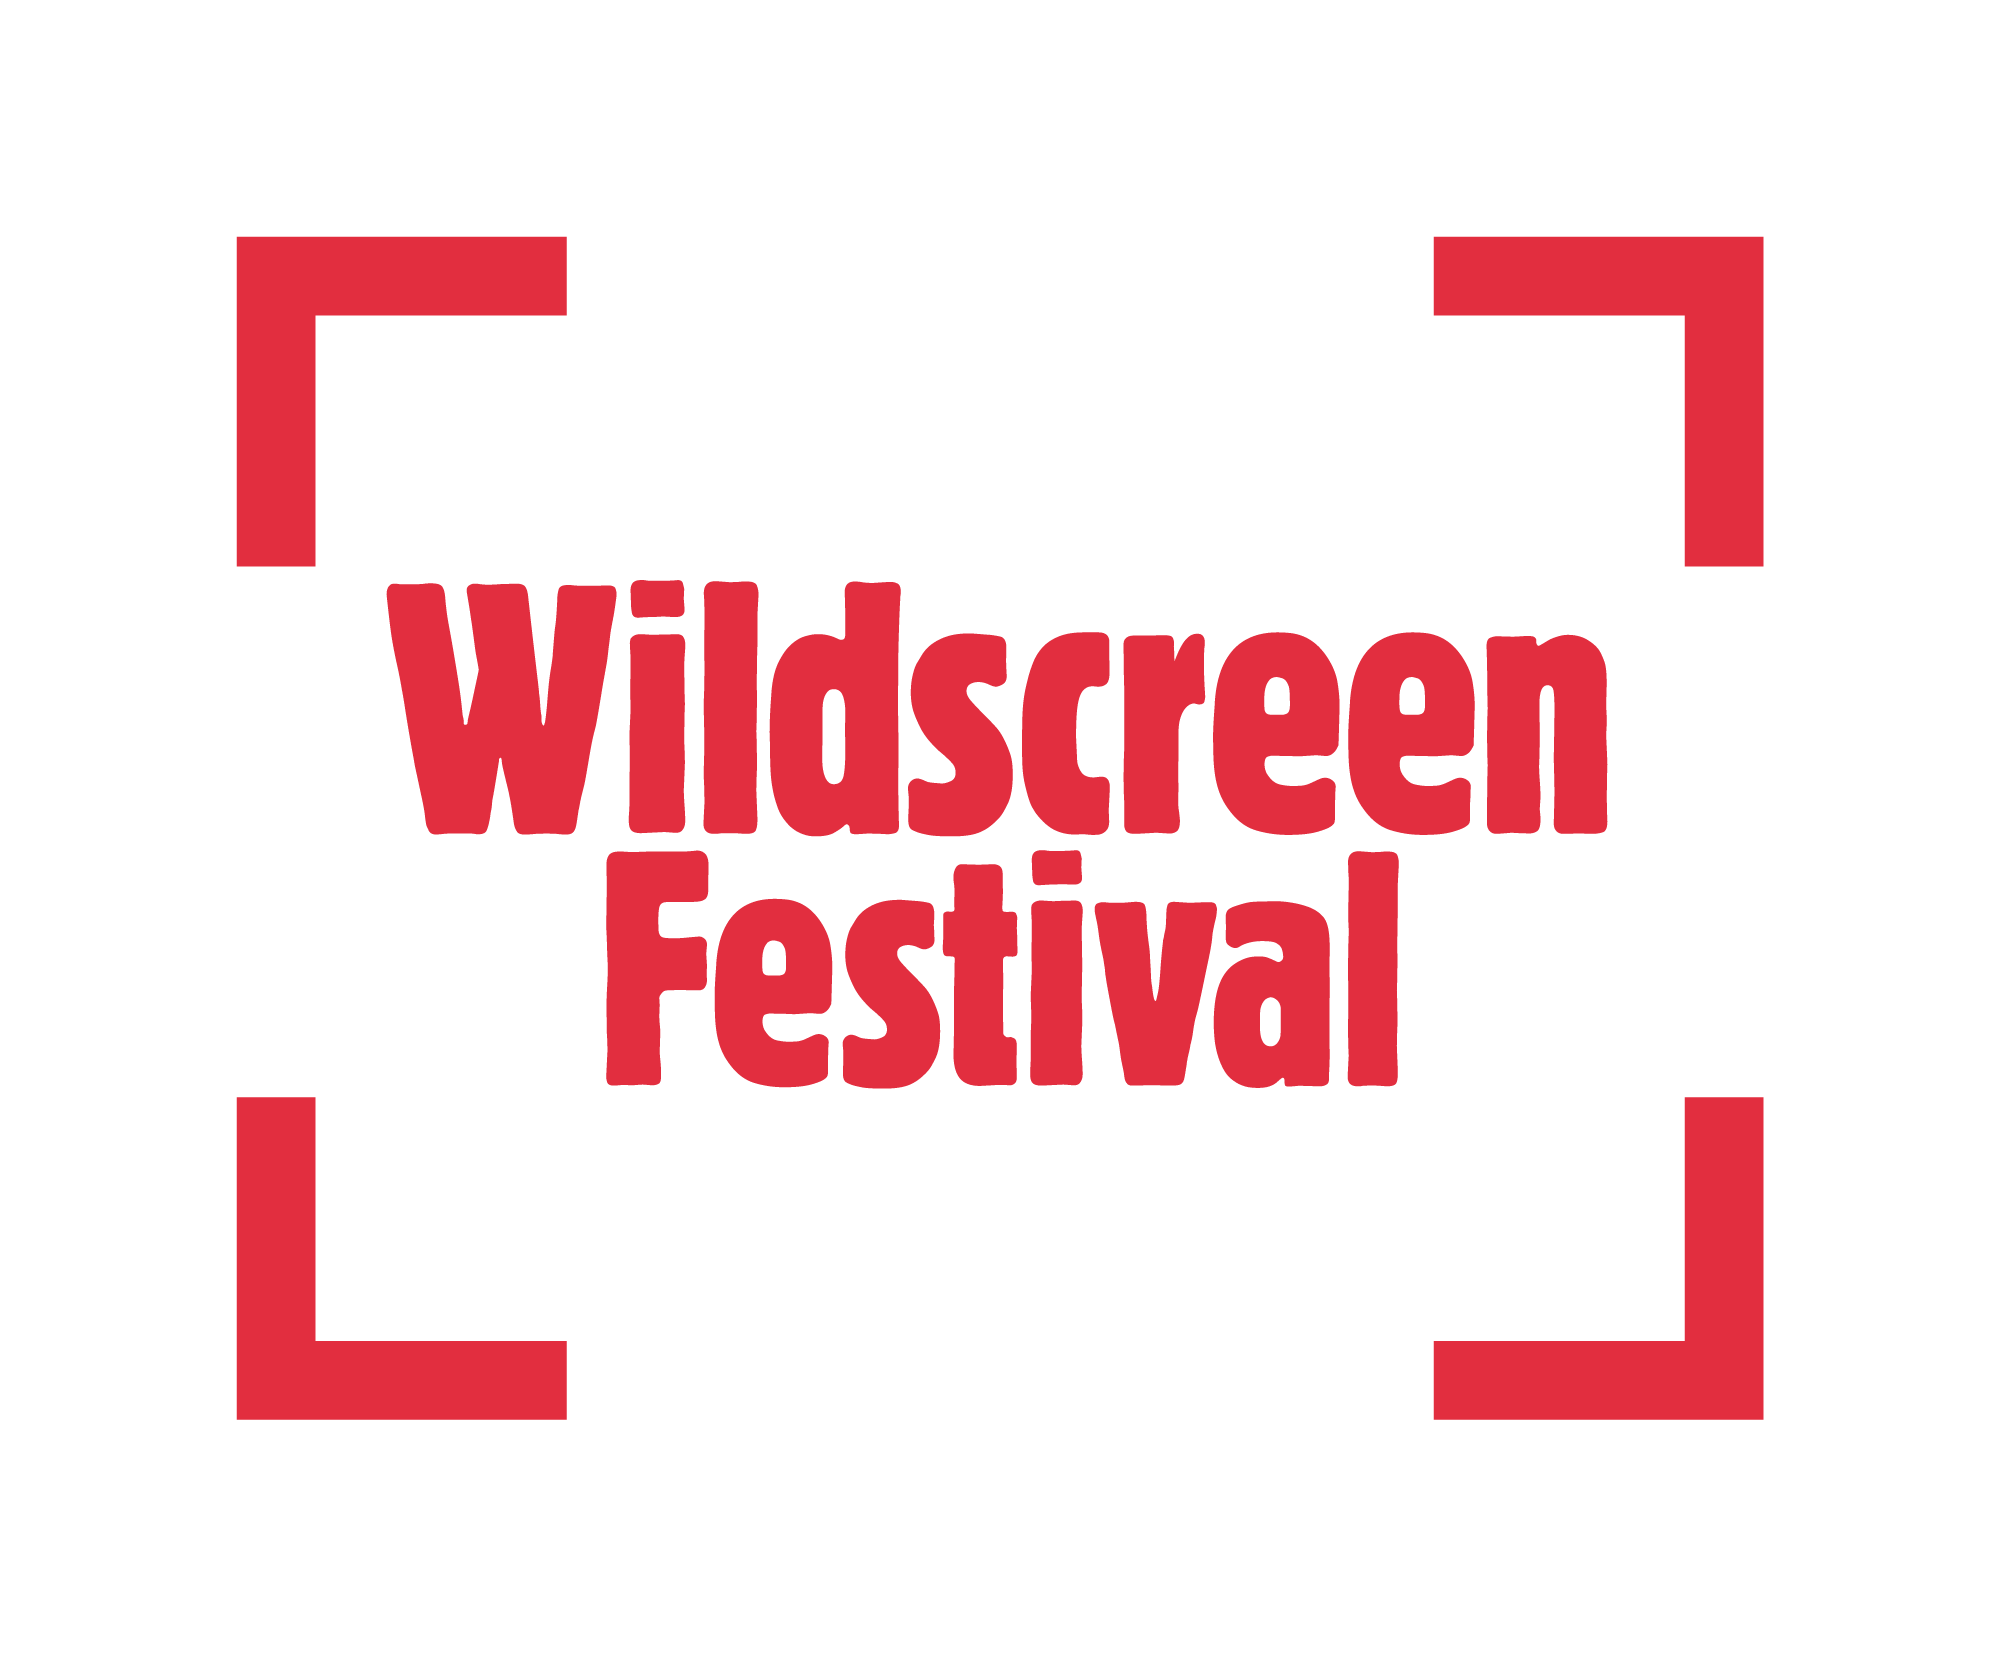 Wildscreen_FESTIVAL_logo_red.png